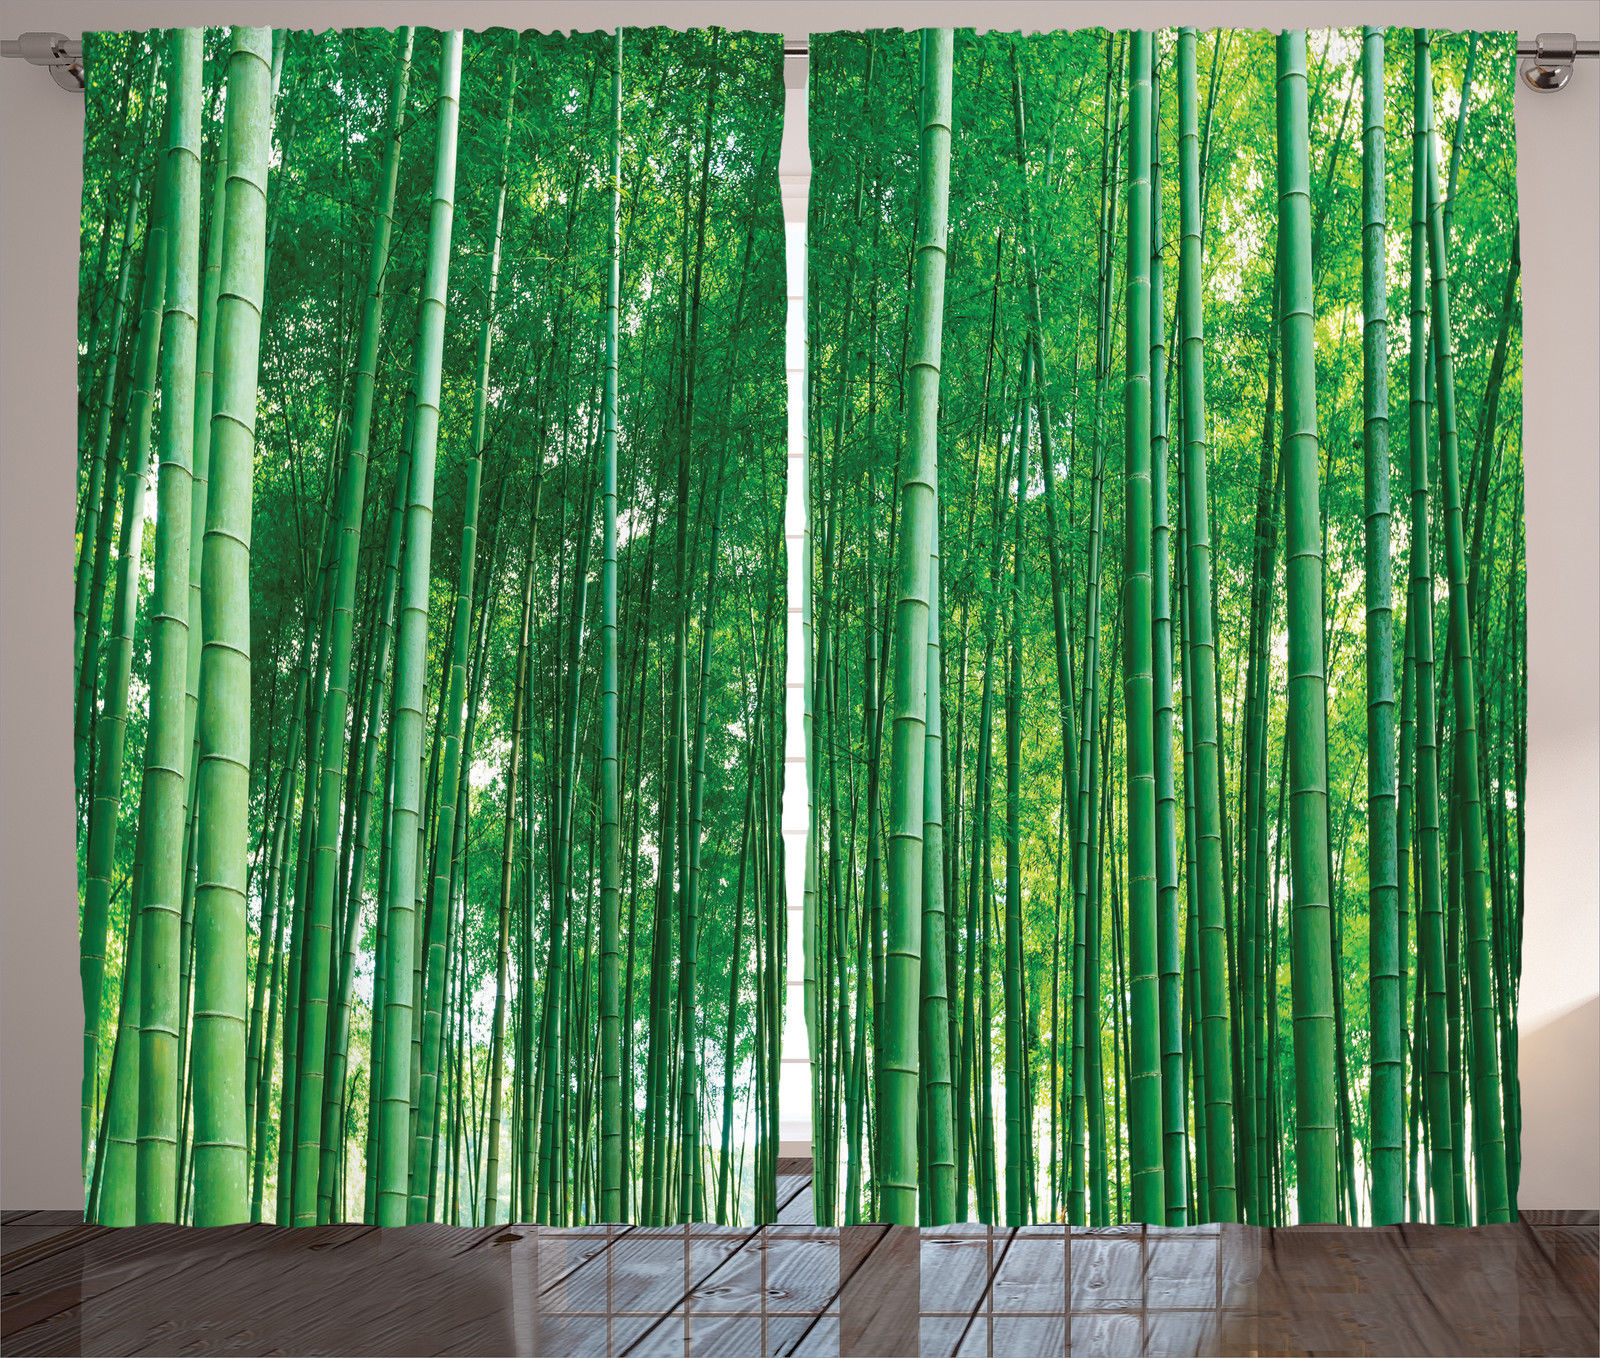 Bamboo House Decor Curtains 2 Panels Set, Bamboo Forest With Fresh Vibrant  Colors Tall Long